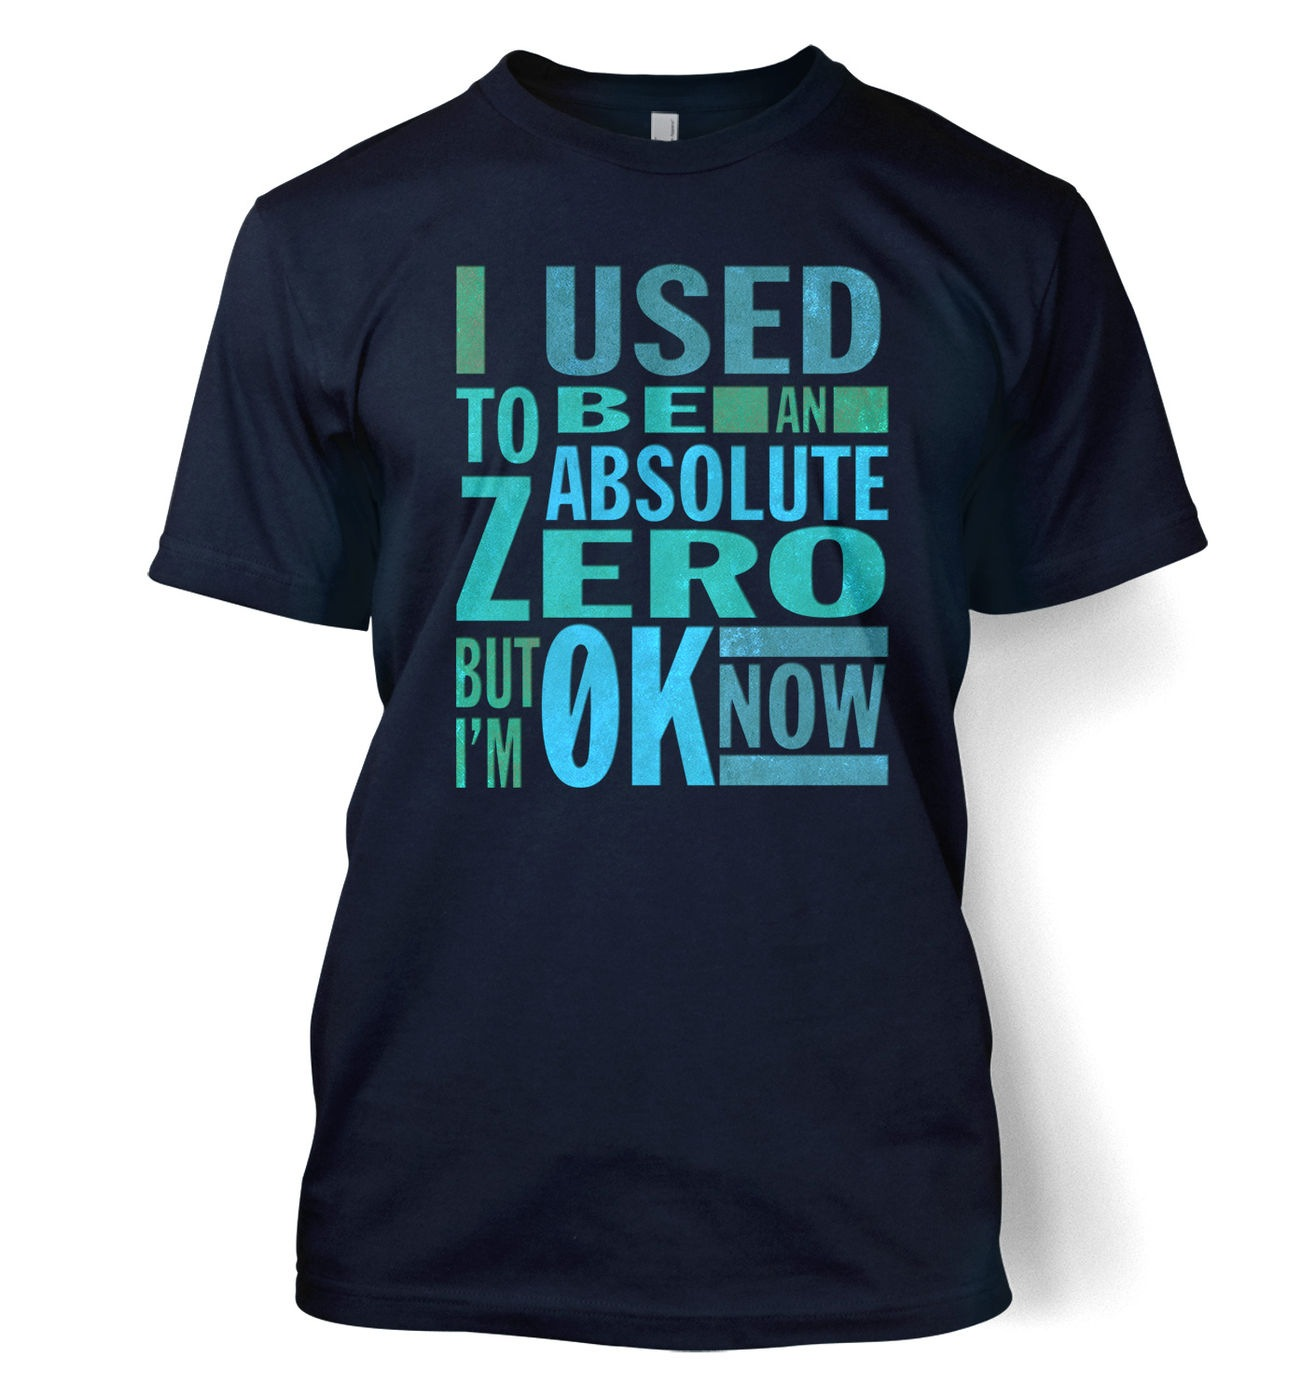 Absolute Zero 0K Now t-shirt - funny science slogan tshirt